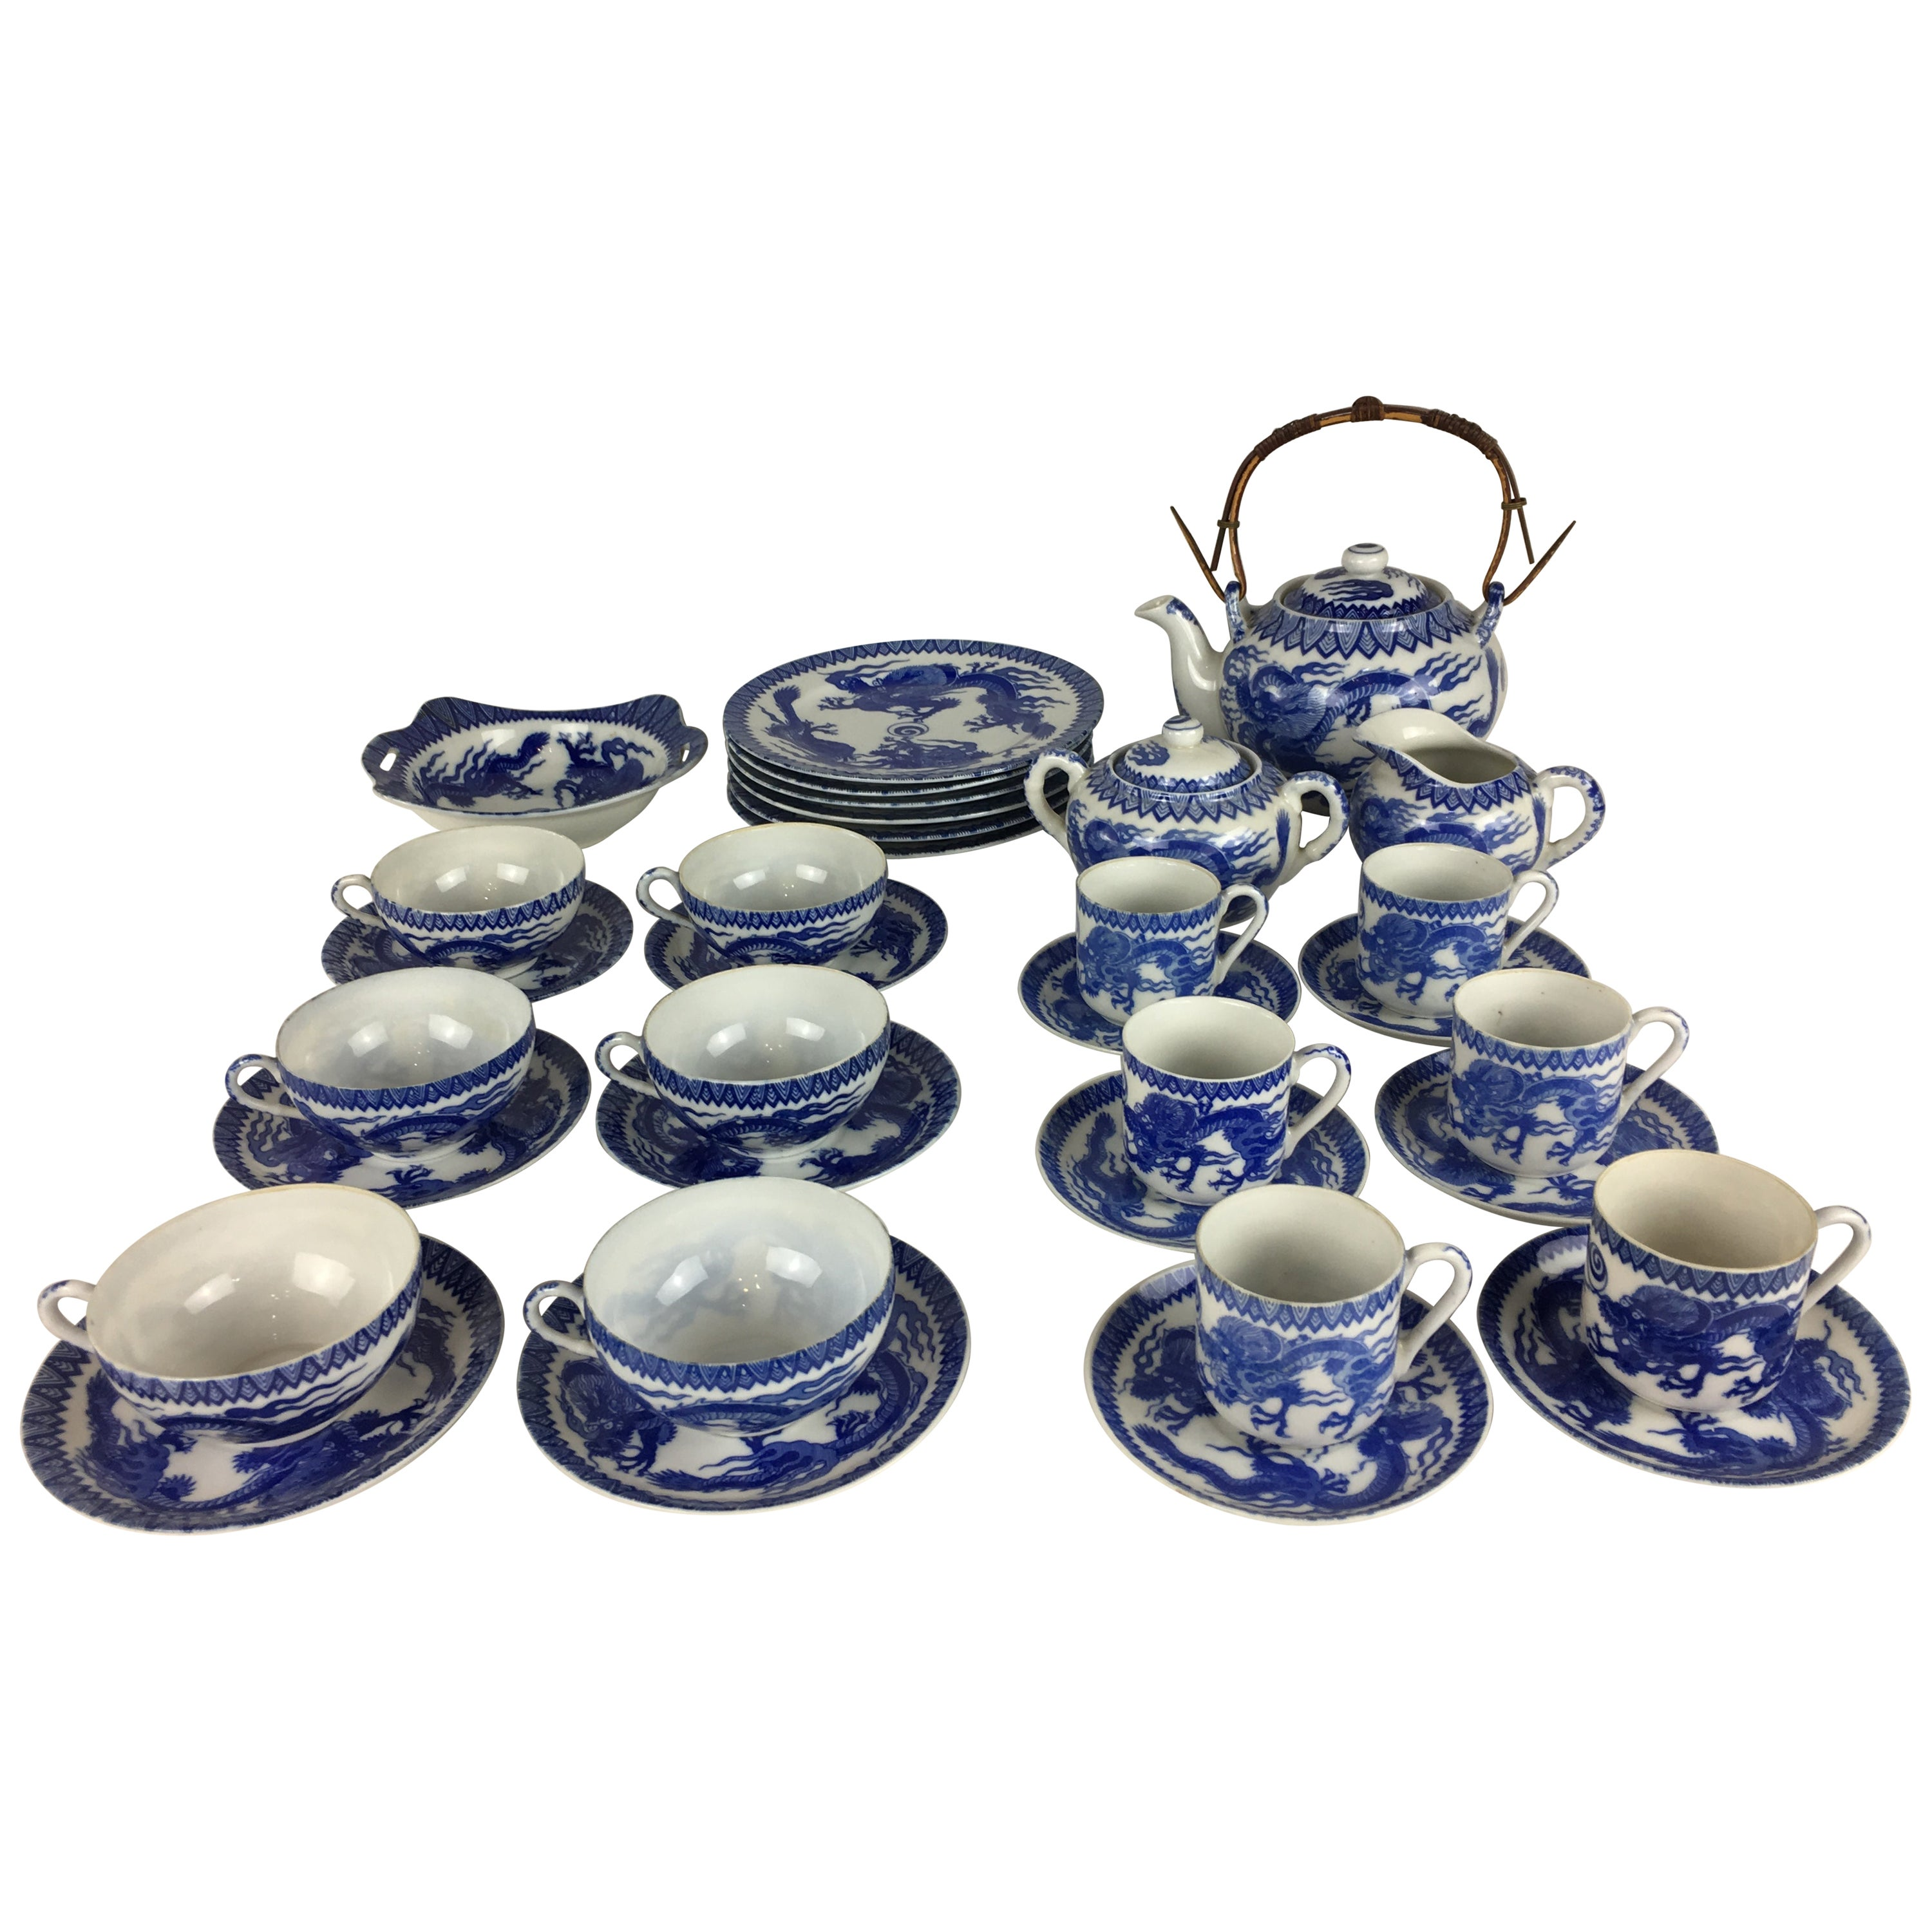 19th Century Japanese Blue and White Arita Porcelain Tea Service, 34 Pieces